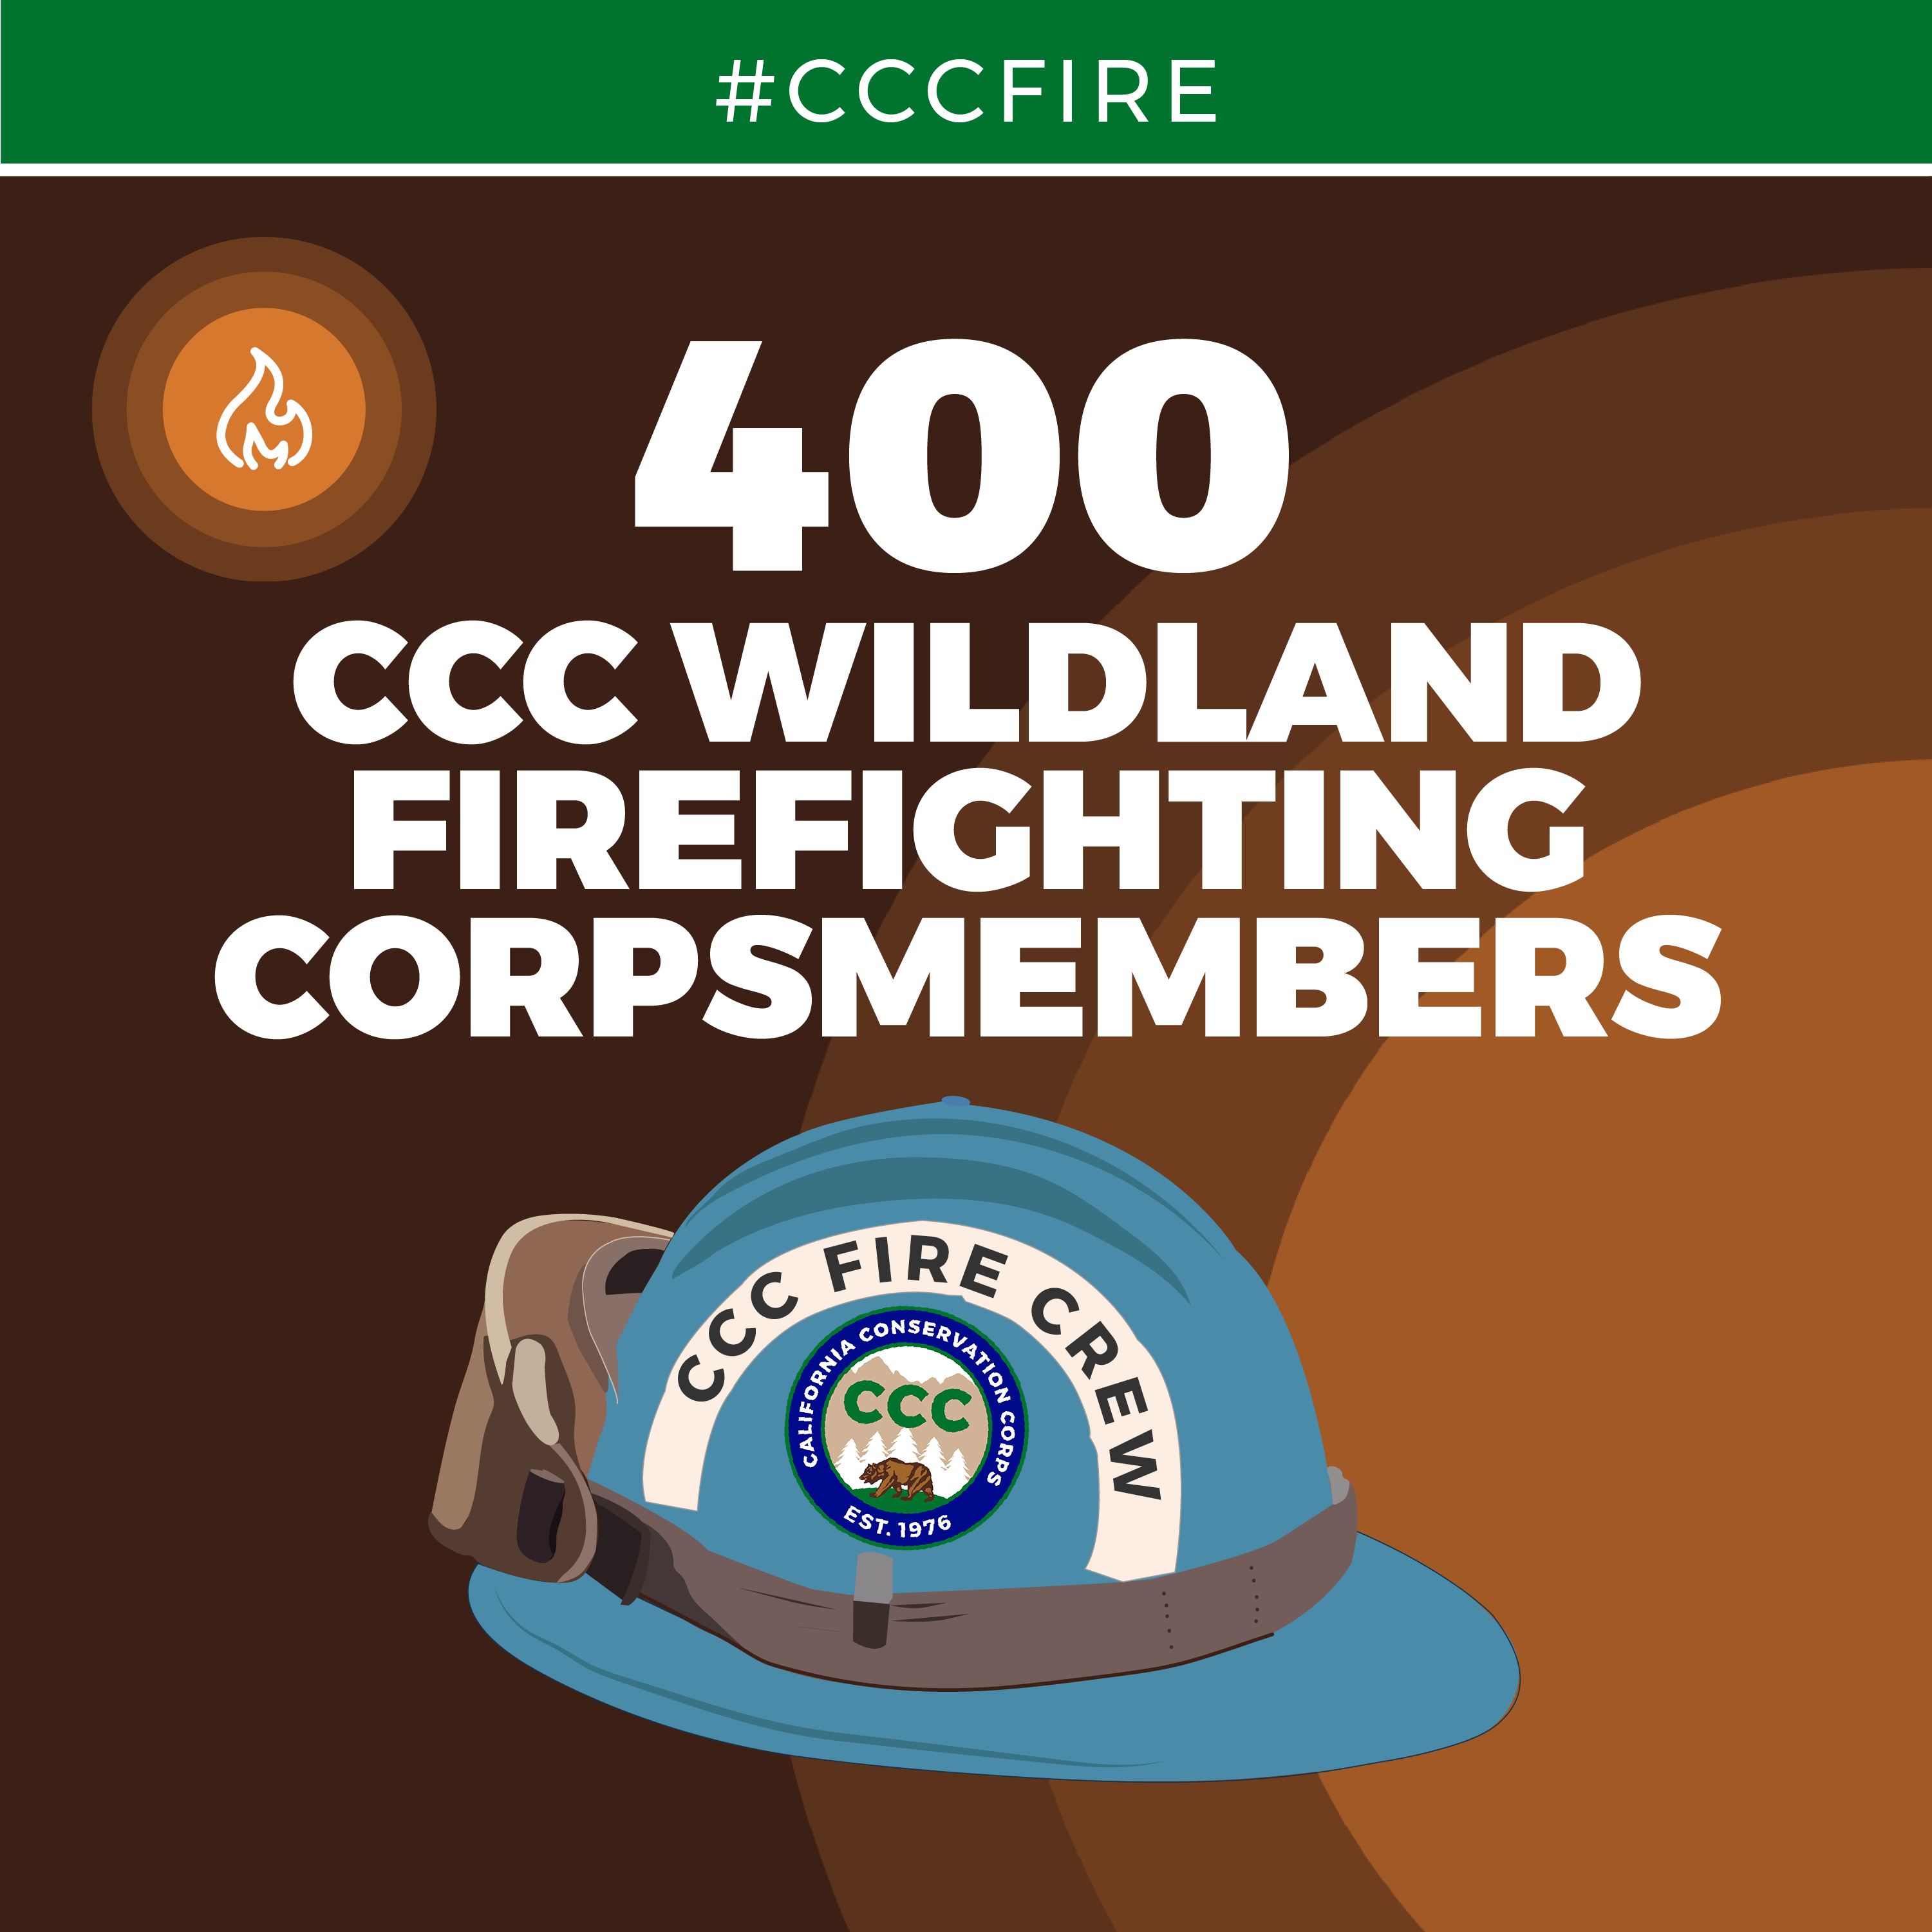 Illustrated image. Reads #CCCfire, 400 CCC wildland firefighting corpsmembers, depicts CCC fire helmet with CCC logo and words CCC fire crew